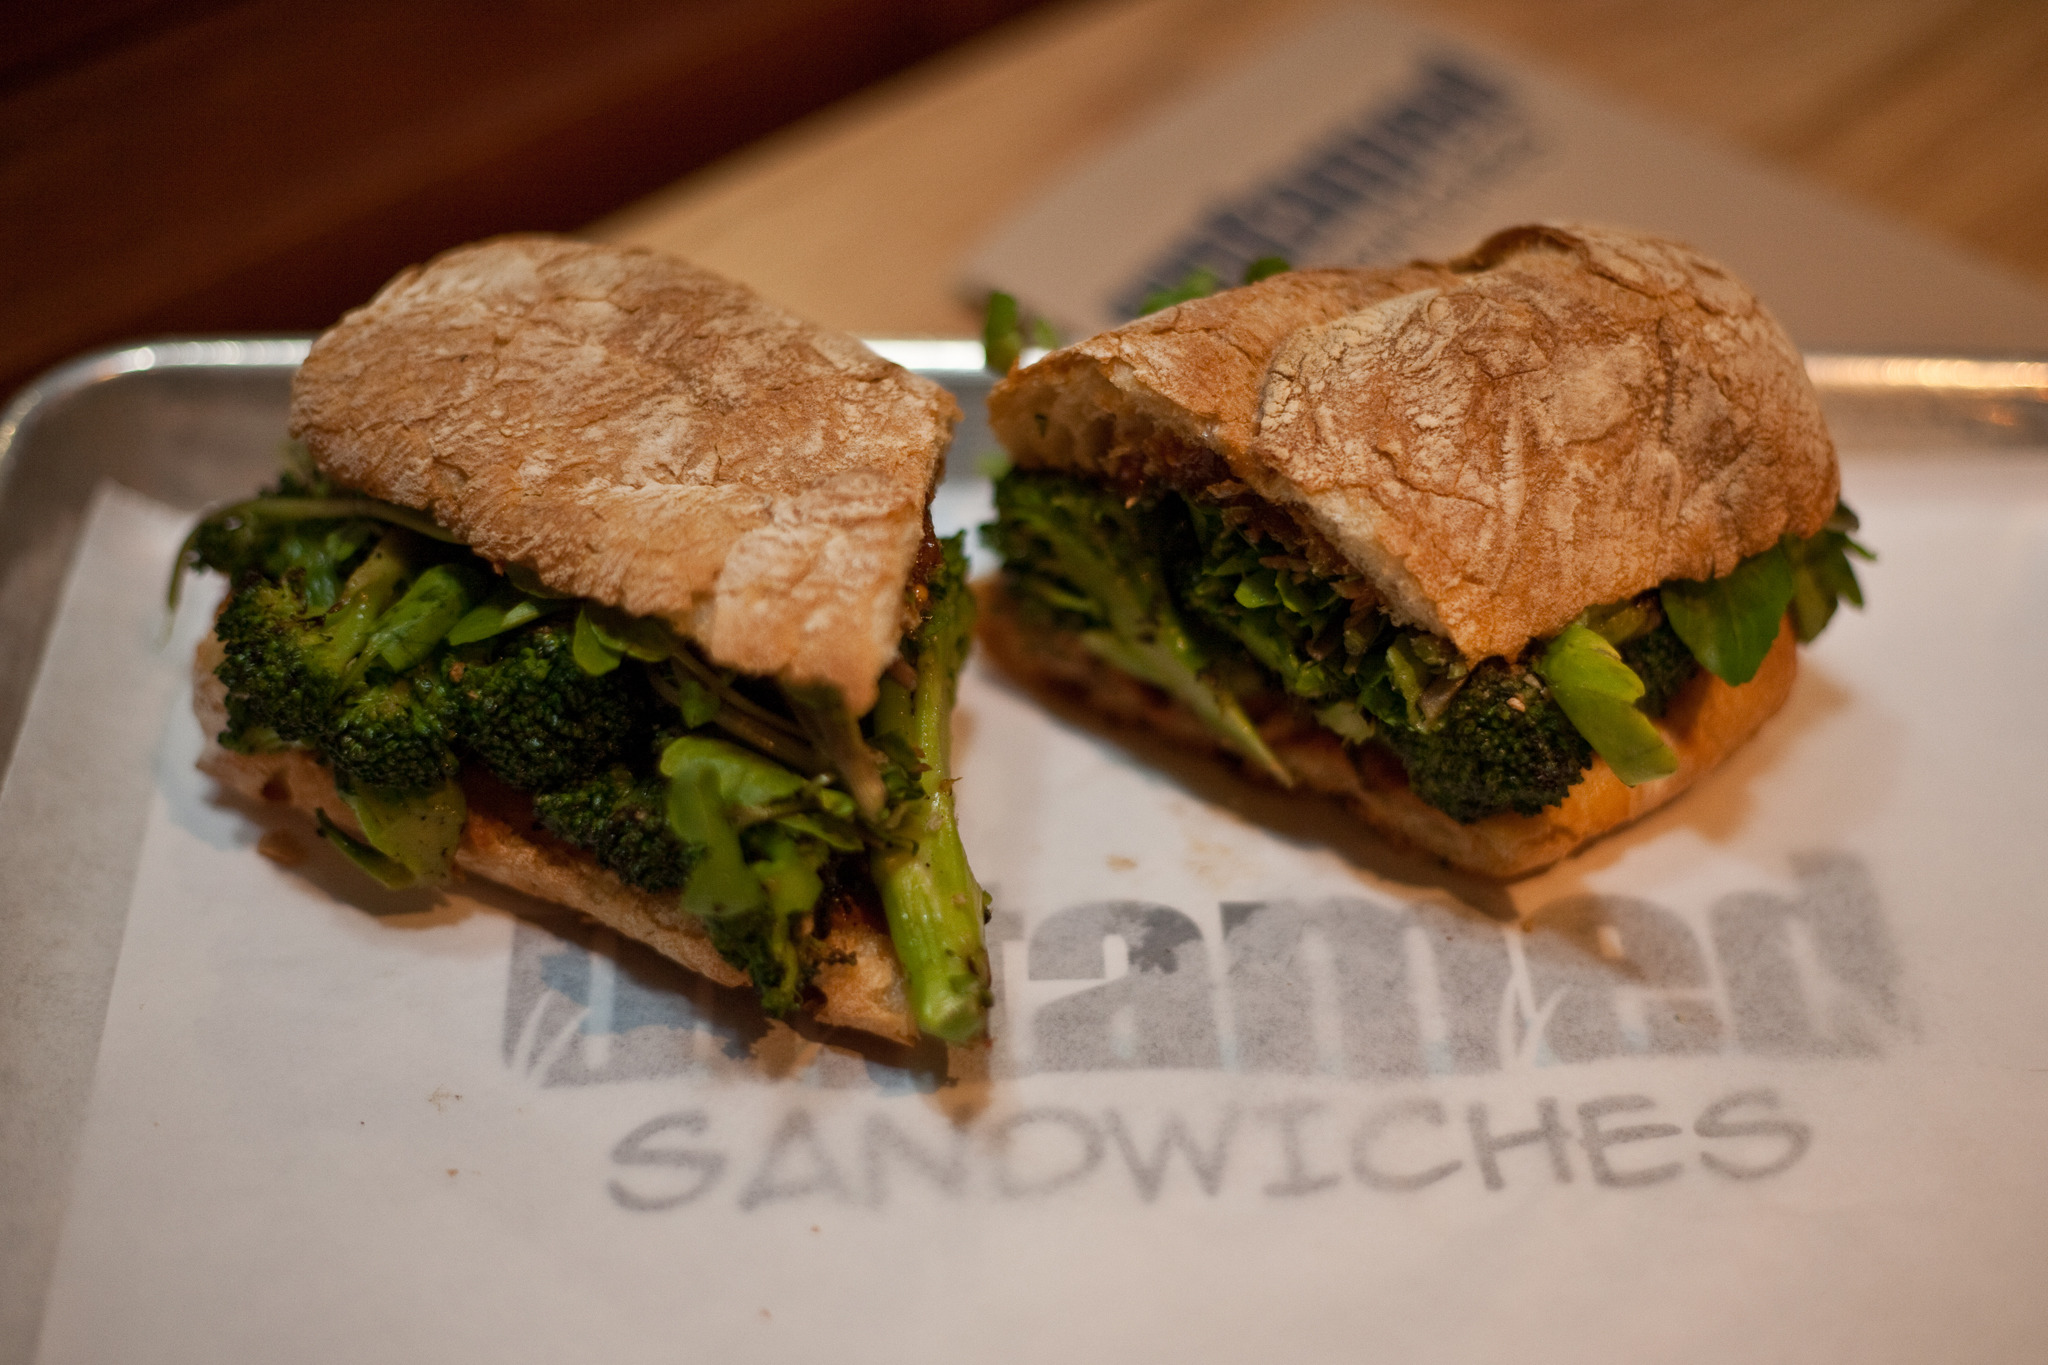 Untamed Sandwiches